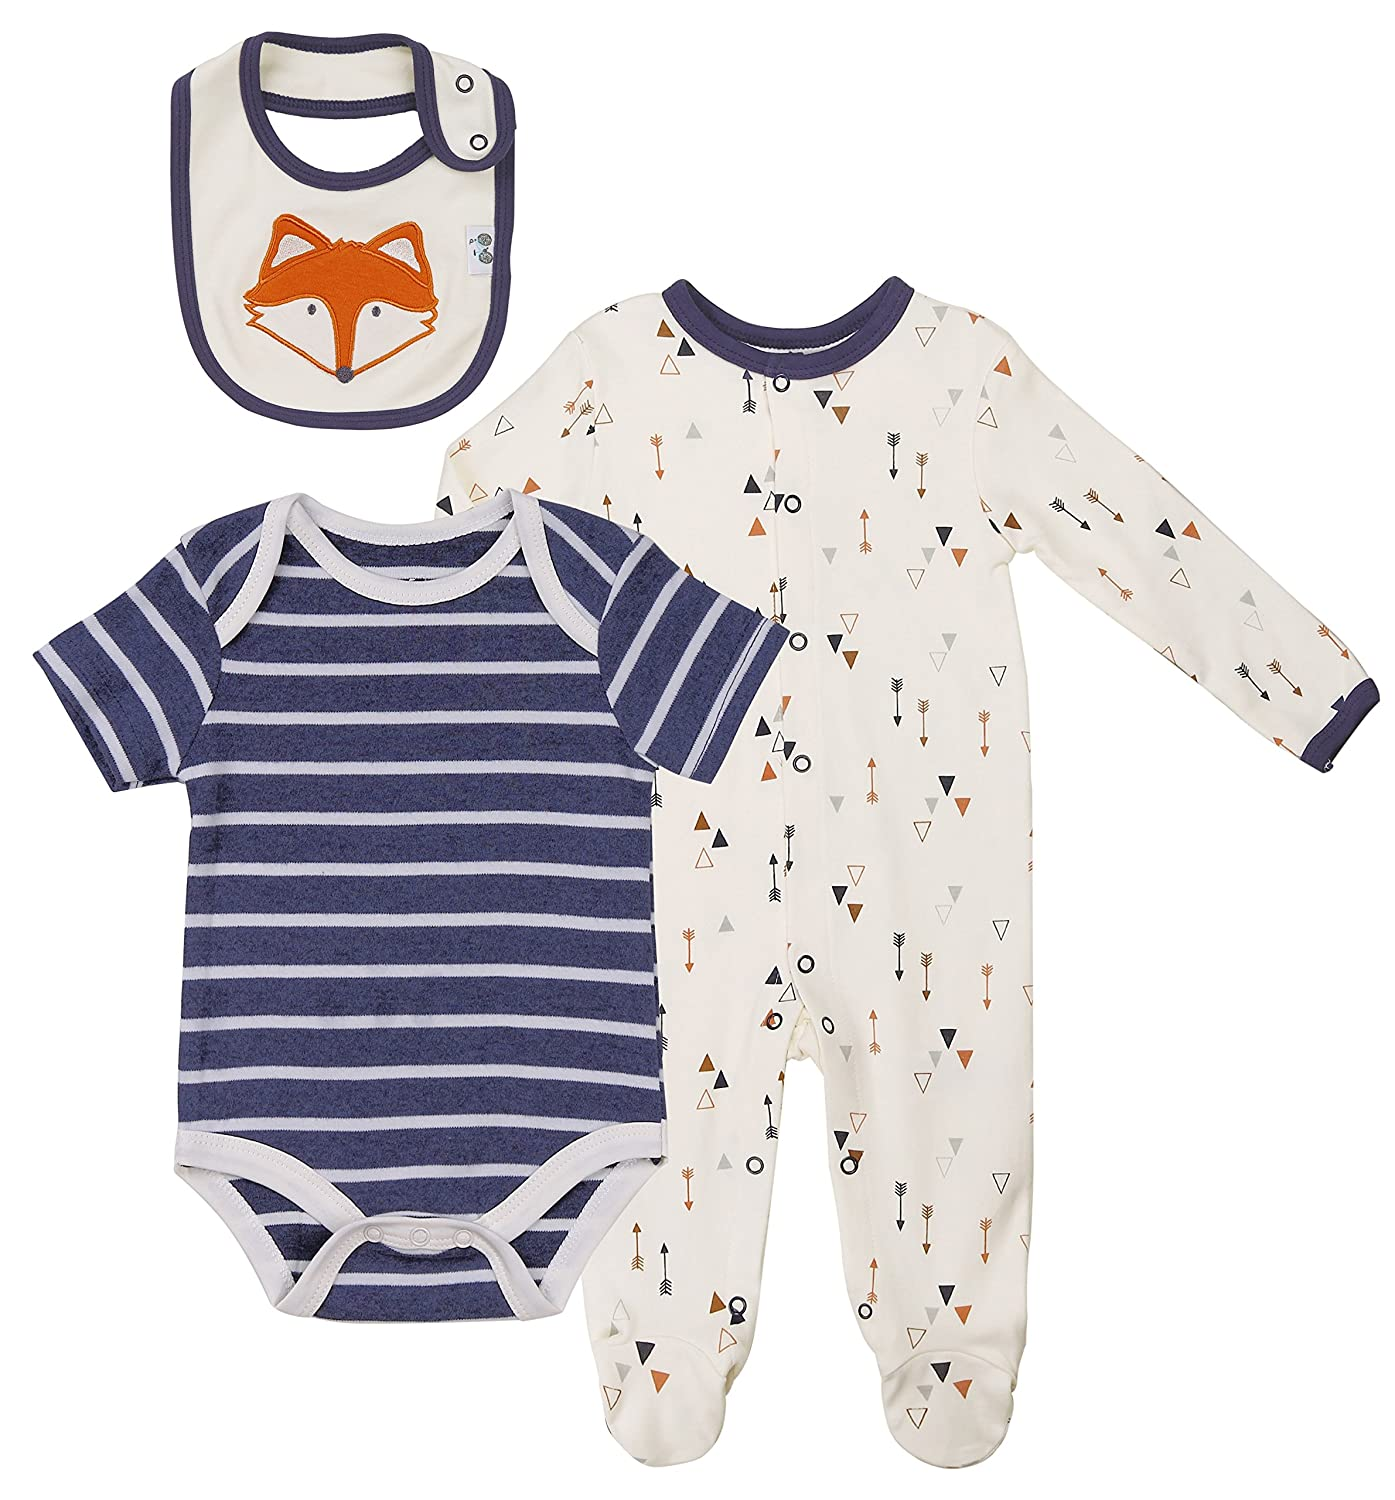 Asher and Olivia Baby Boys' 3-Piece Layette Set. Bundle Includes Footed Pajama, Bodysuit, and Matching Bib